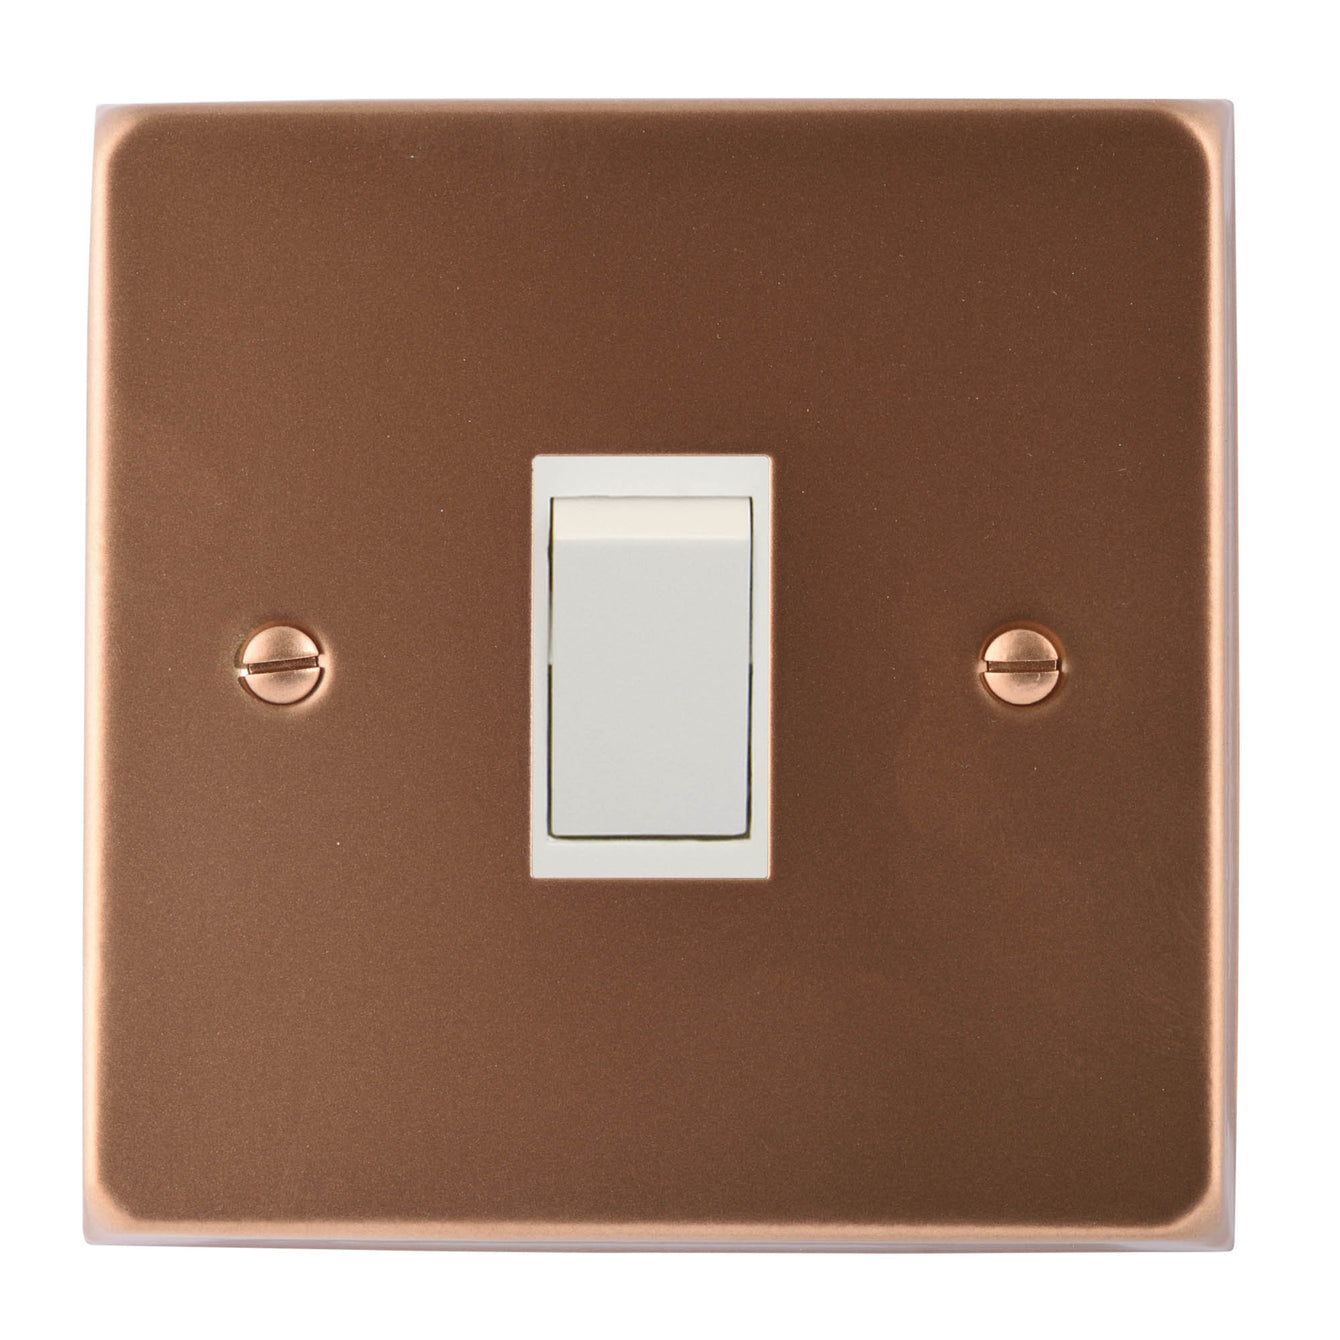 ElekTek Light Switch Conversion Cover Plate Single Victorian - Buy It Better Brilliant White